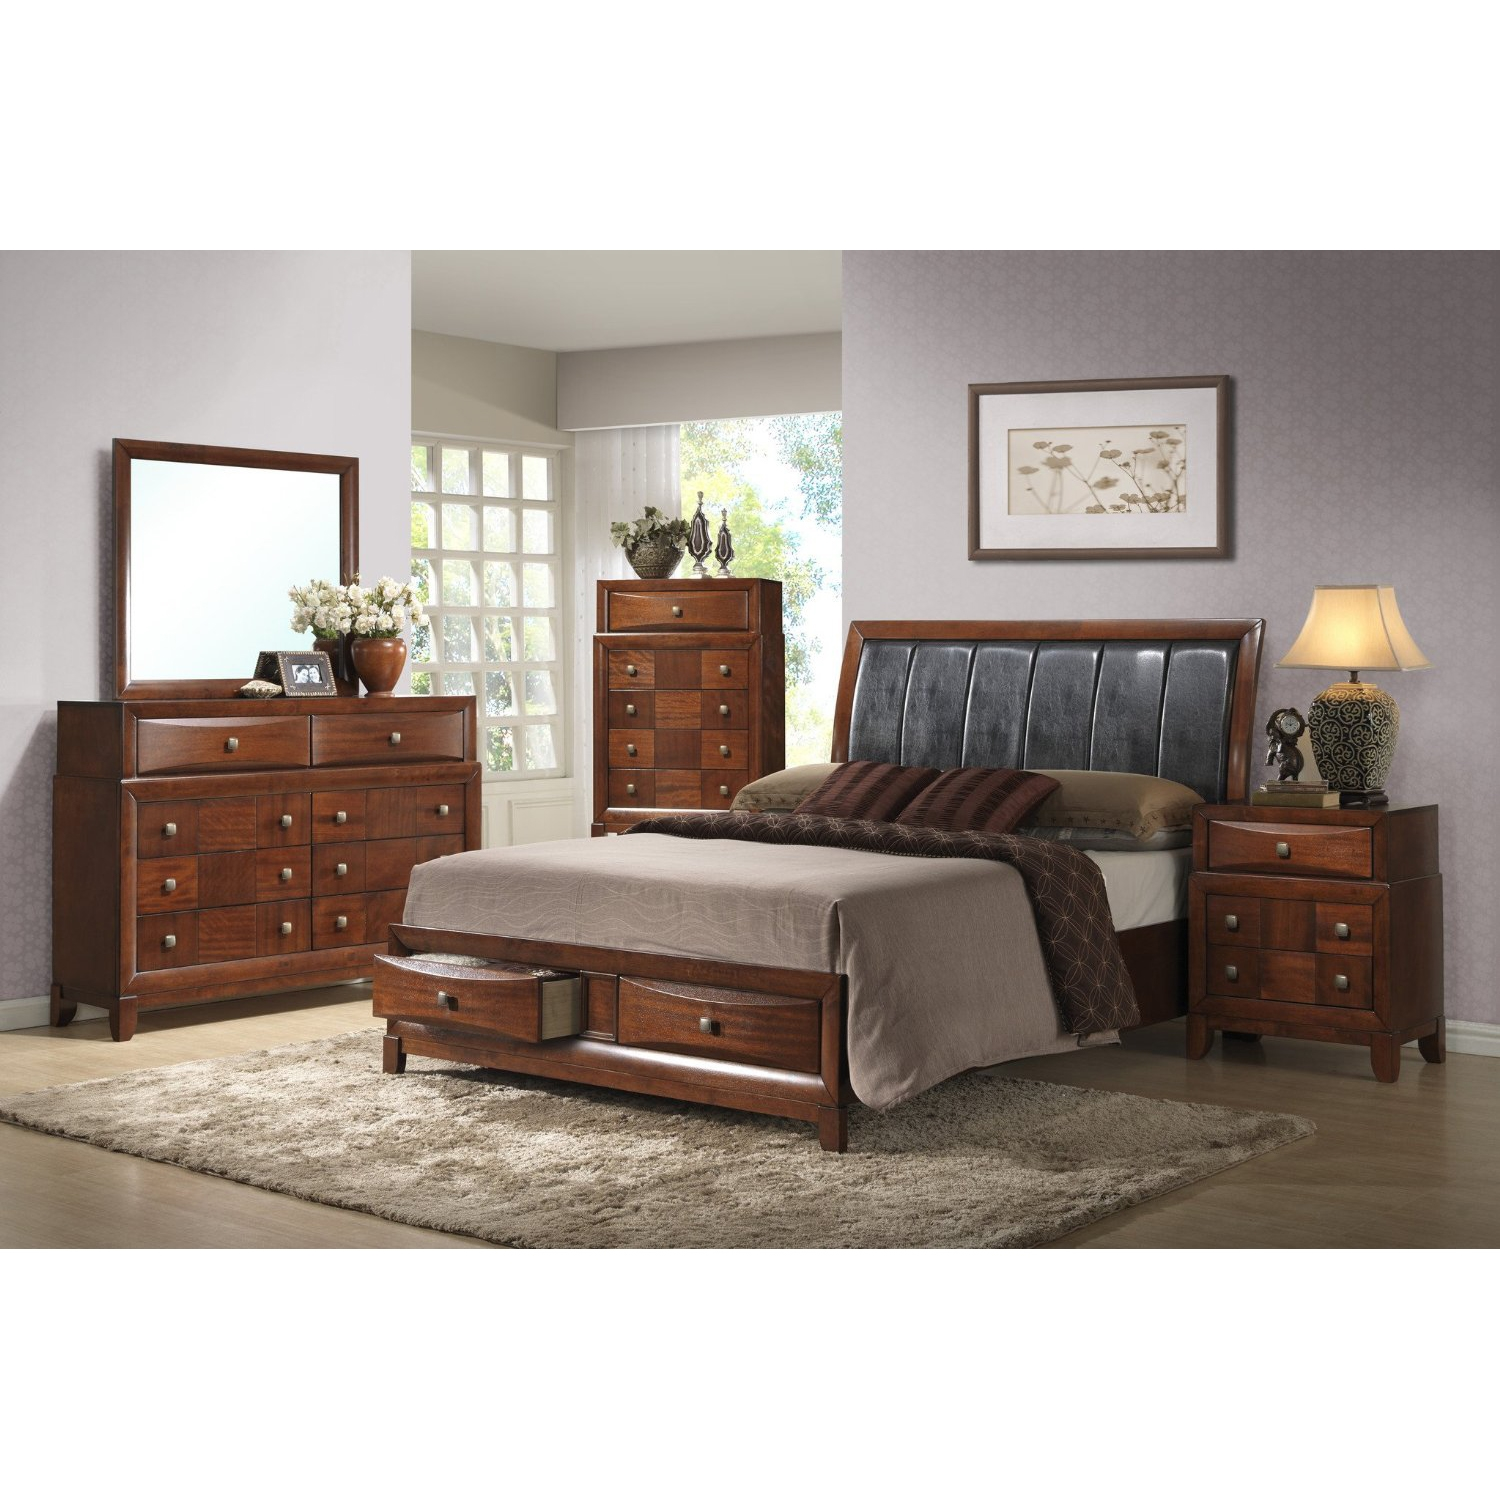 Oasis Bed, Oak Finish - GLO-OASIS-BED